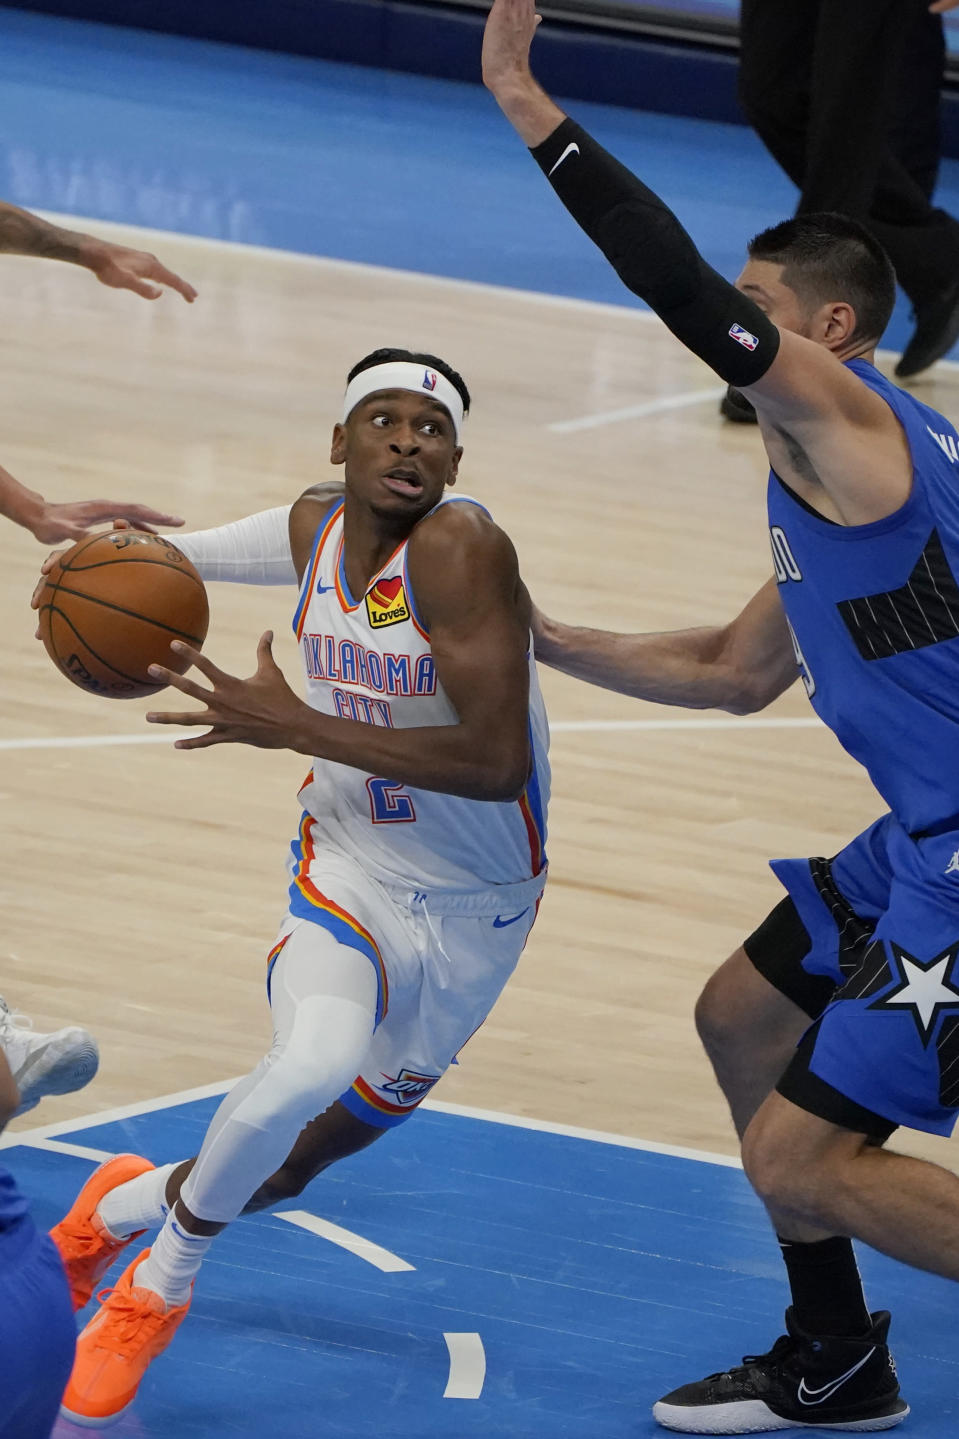 Oklahoma City Thunder guard Shai Gilgeous-Alexander (2) drives around Orlando Magic center Nikola Vucevic during the second half of an NBA basketball game Tuesday, Dec. 29, 2020, in Oklahoma City. (AP Photo/Sue Ogrocki)